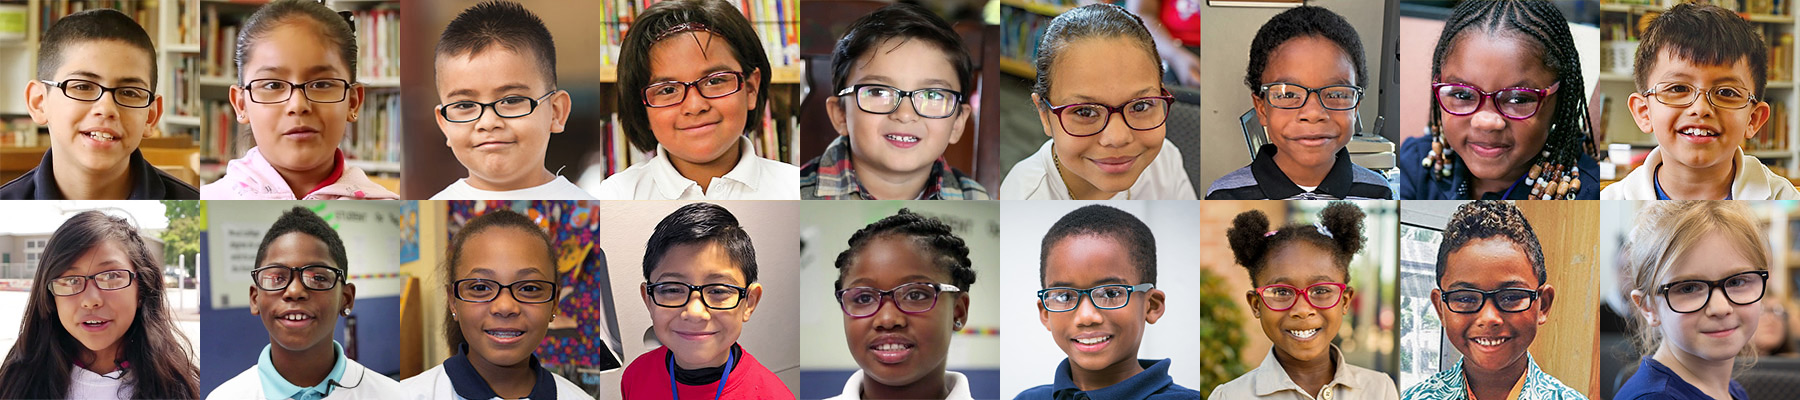 18 faces of children with their new eyeglasses